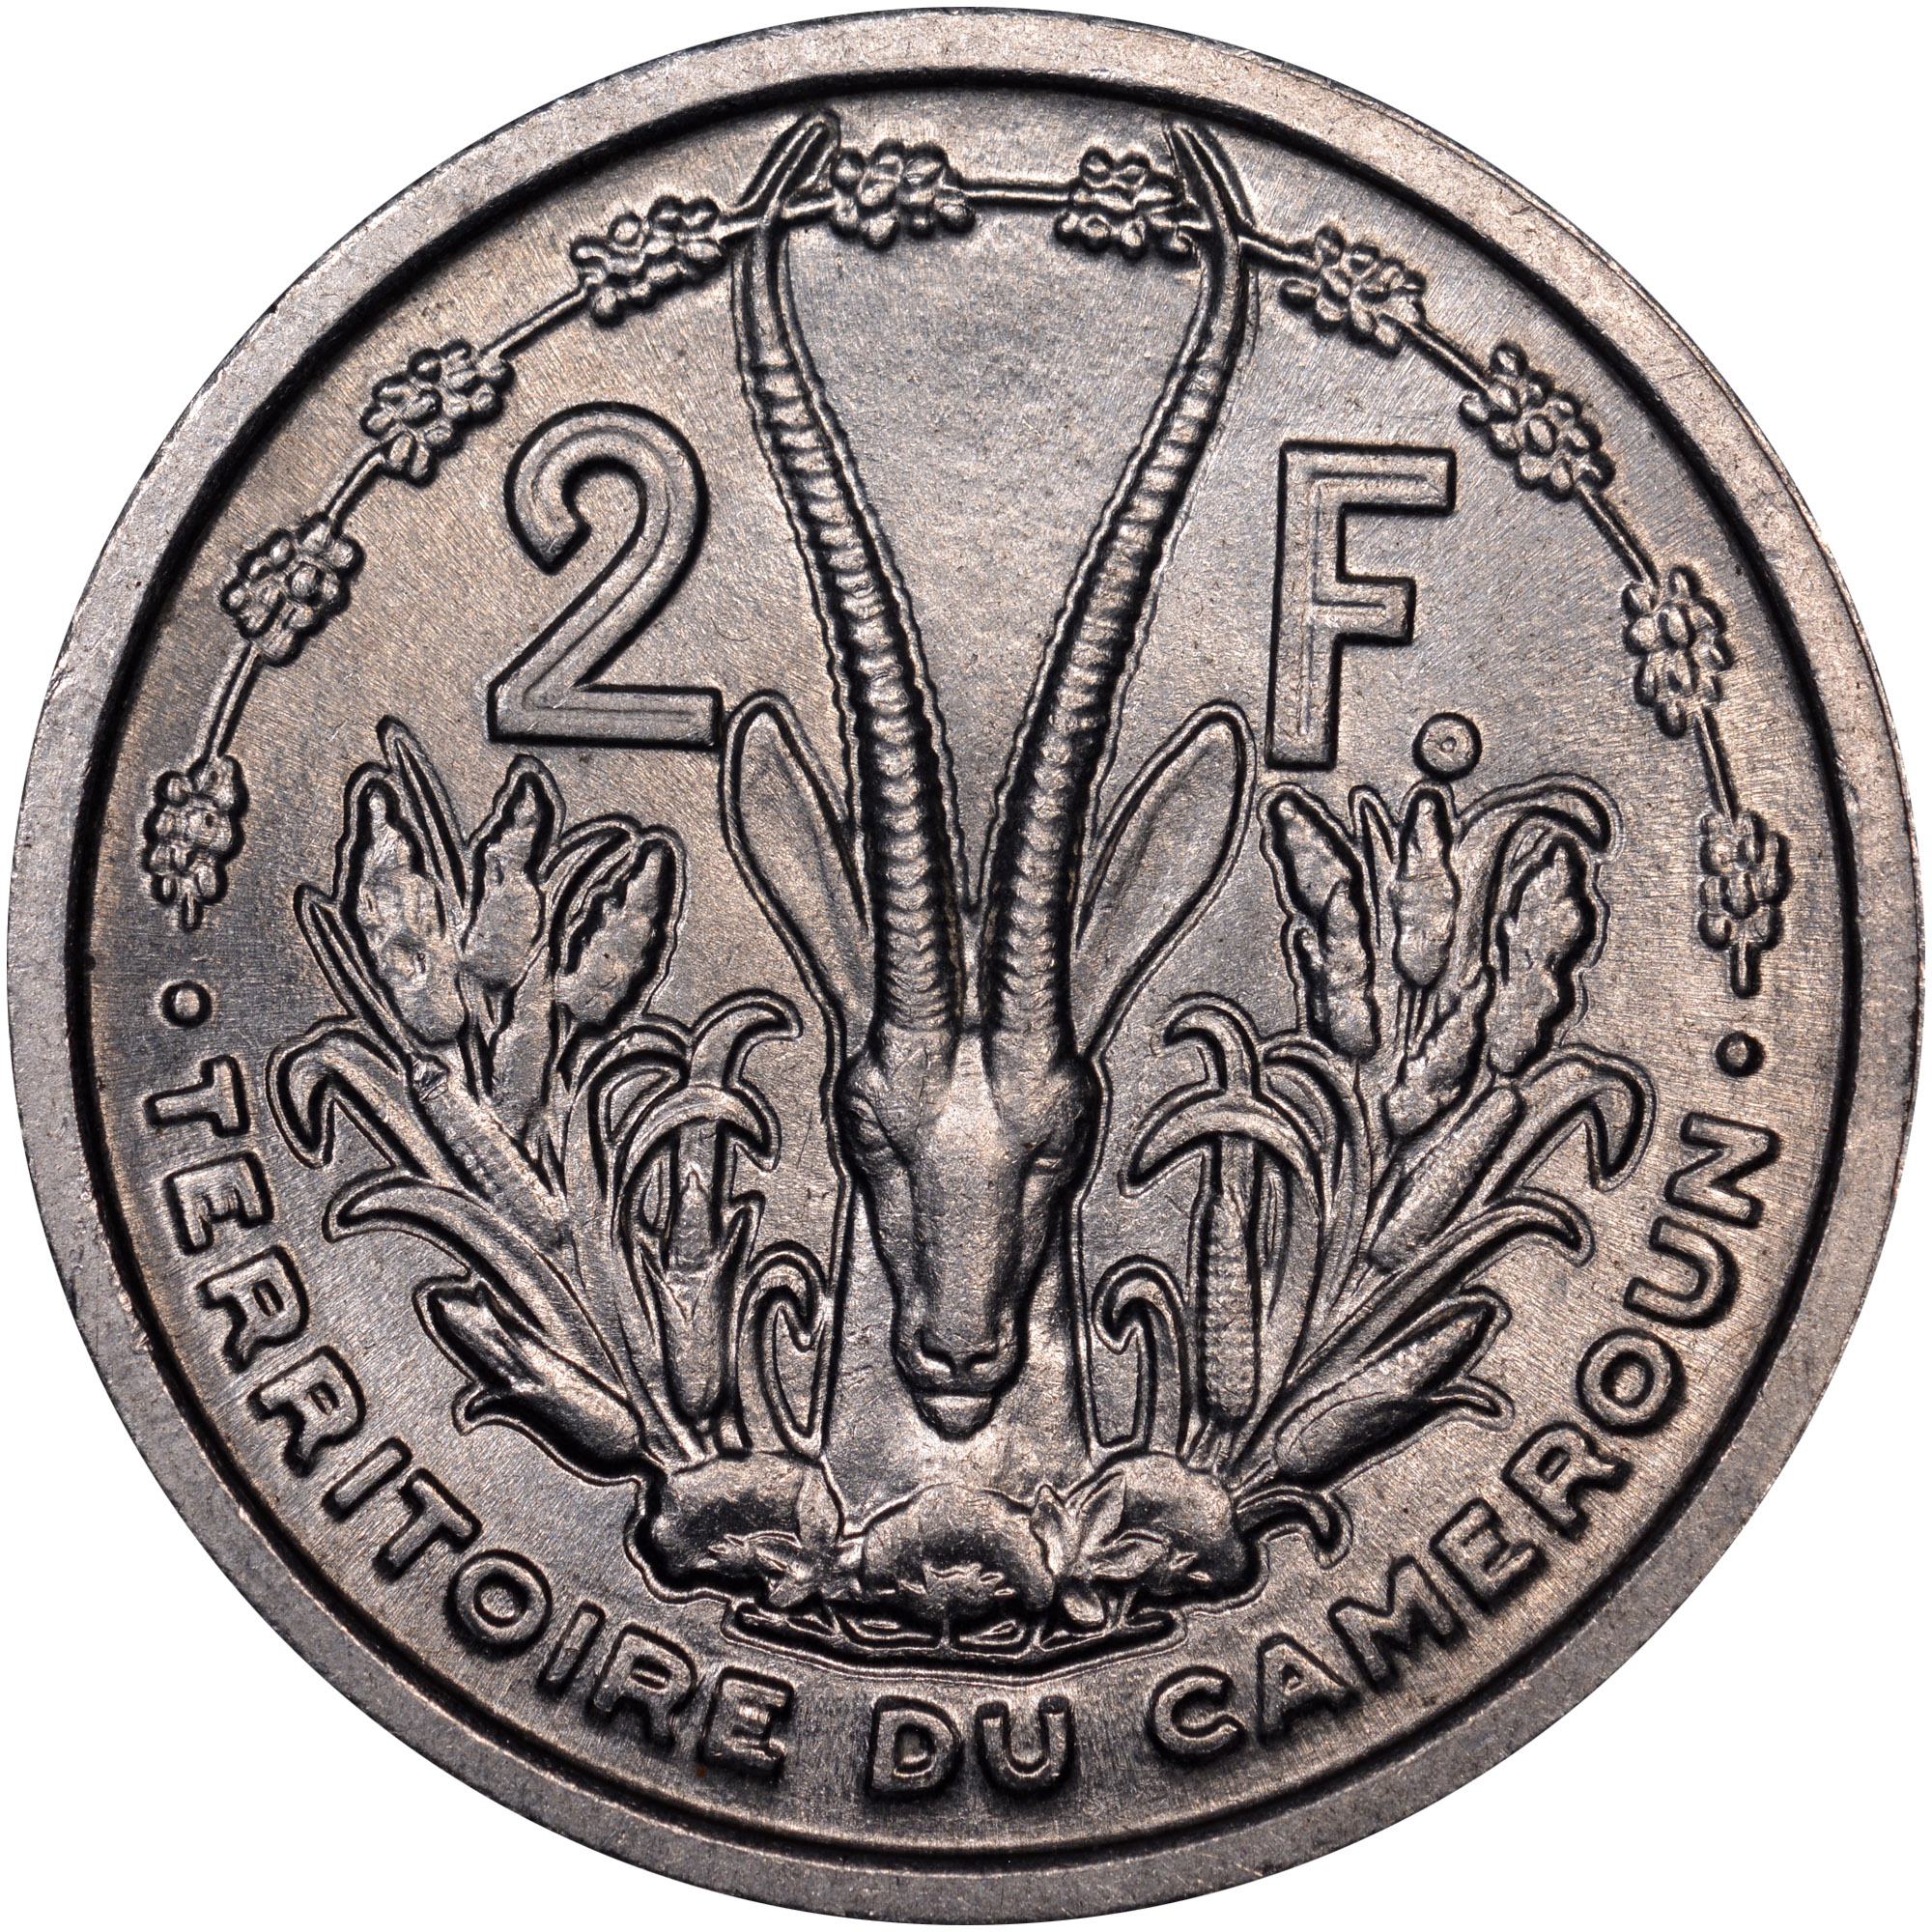 1948 Cameroon 2 Francs reverse